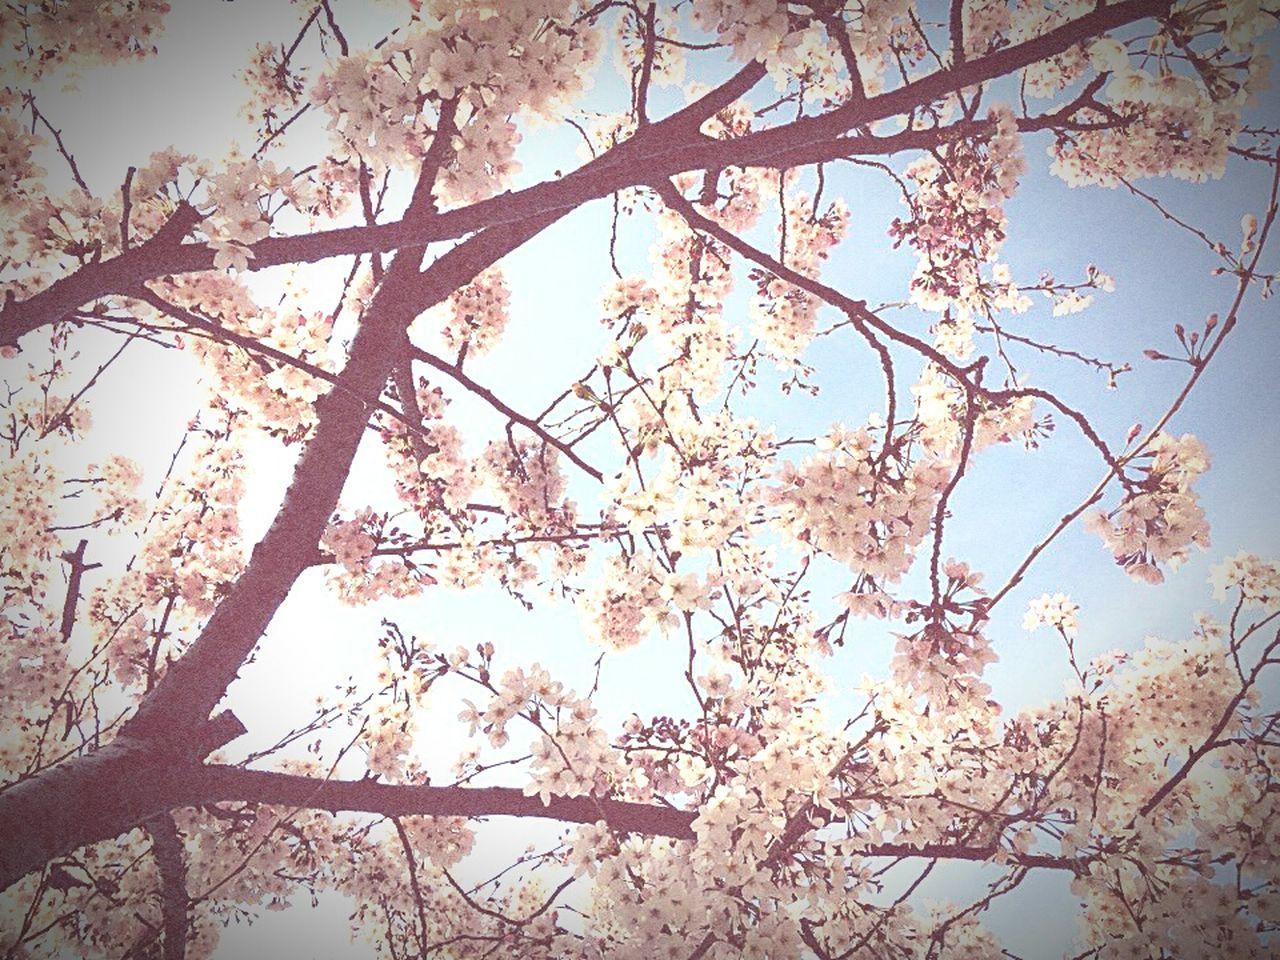 tree, branch, nature, beauty in nature, low angle view, growth, flower, blossom, outdoors, day, no people, backgrounds, sky, freshness, springtime, scenics, fragility, close-up